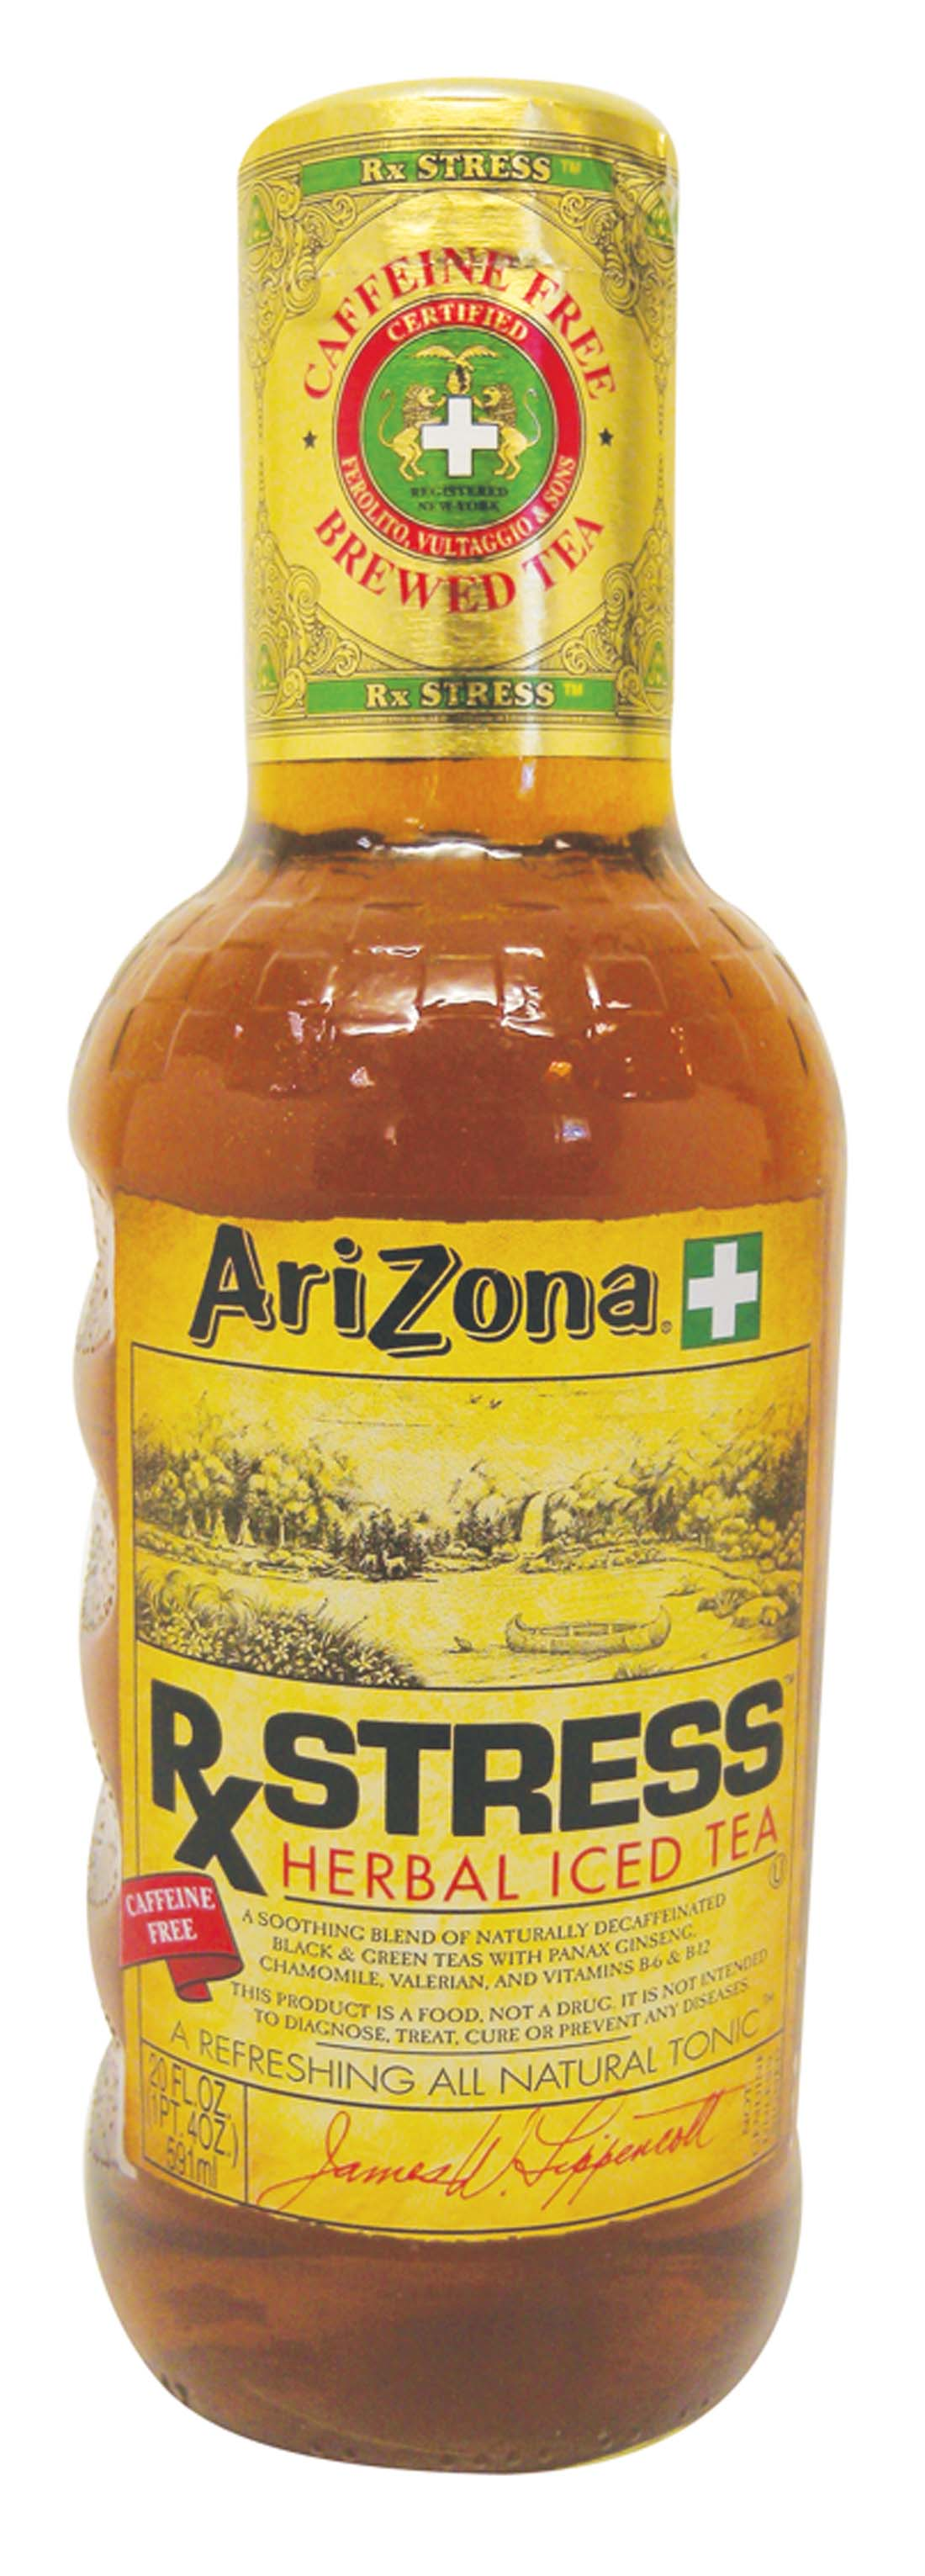 View ARIZONA HERBAL ICED TEA 20 OZ GLASS BOTTLE RX STRESS